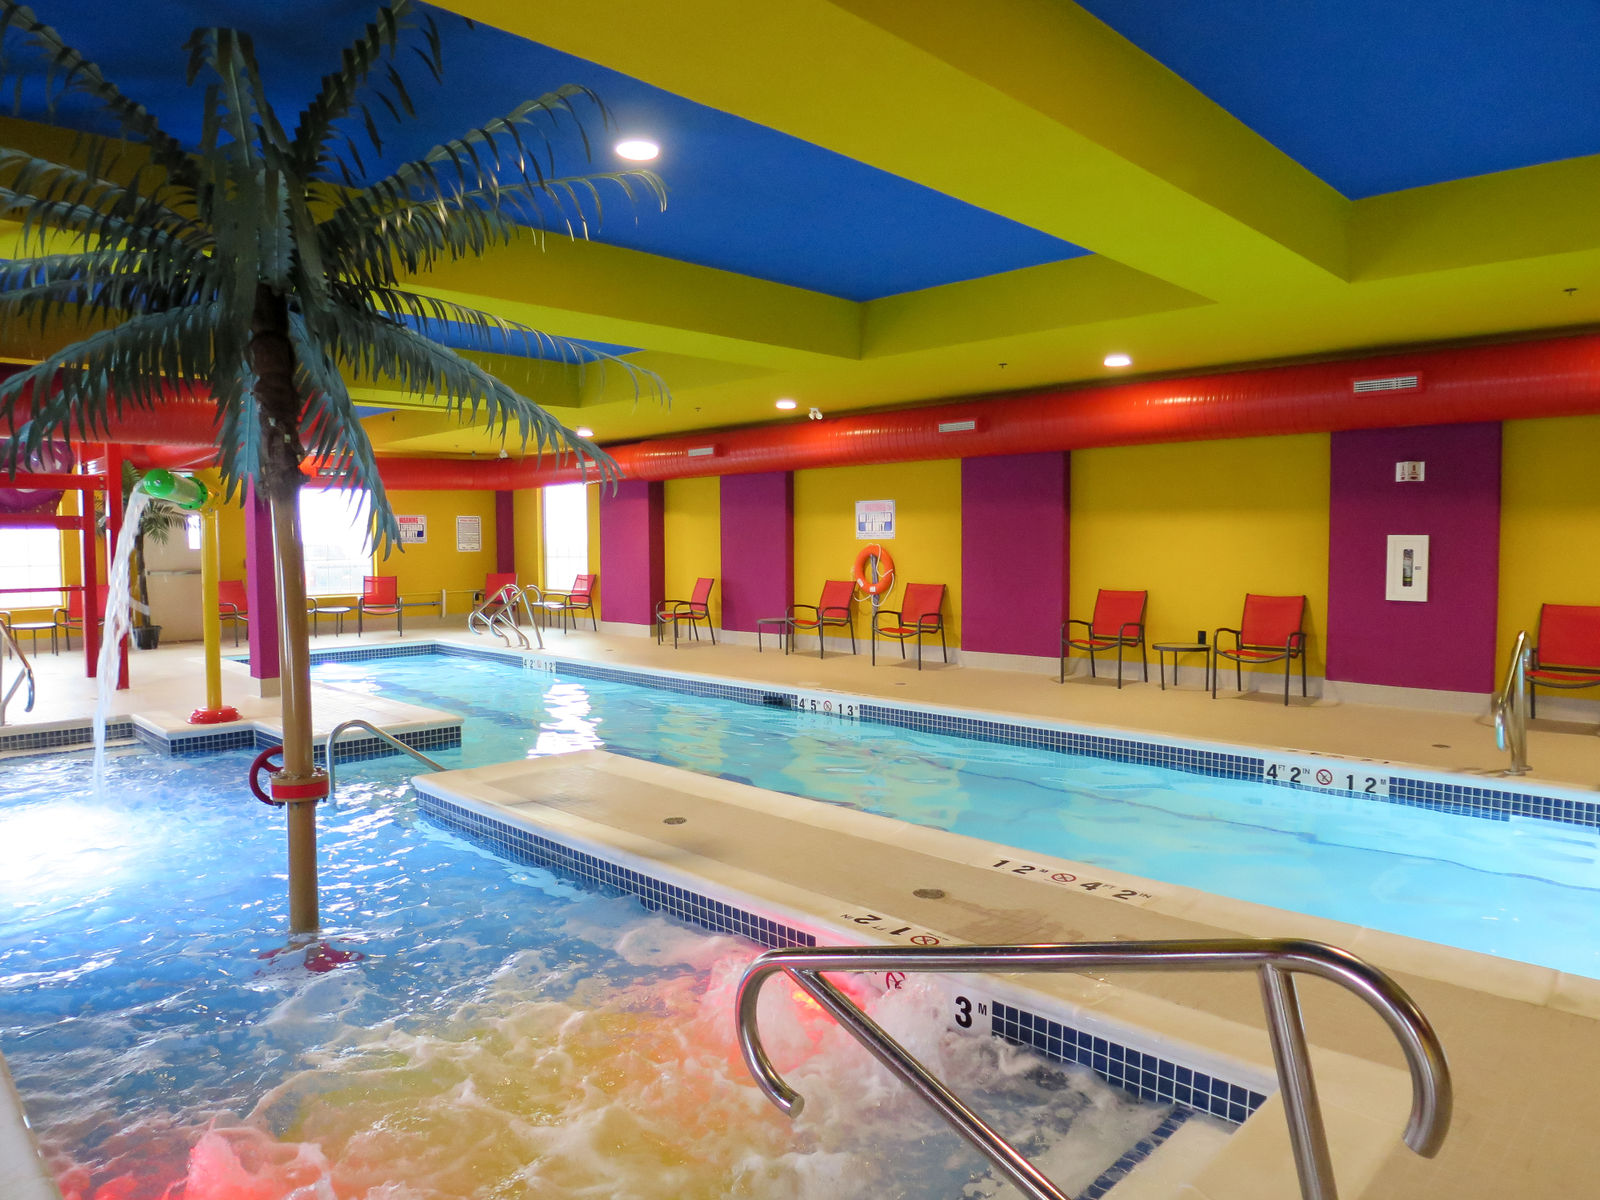 Families enjoy getting away to the Comfort Suites Regina Hotel for its incredible indoor waterpark.